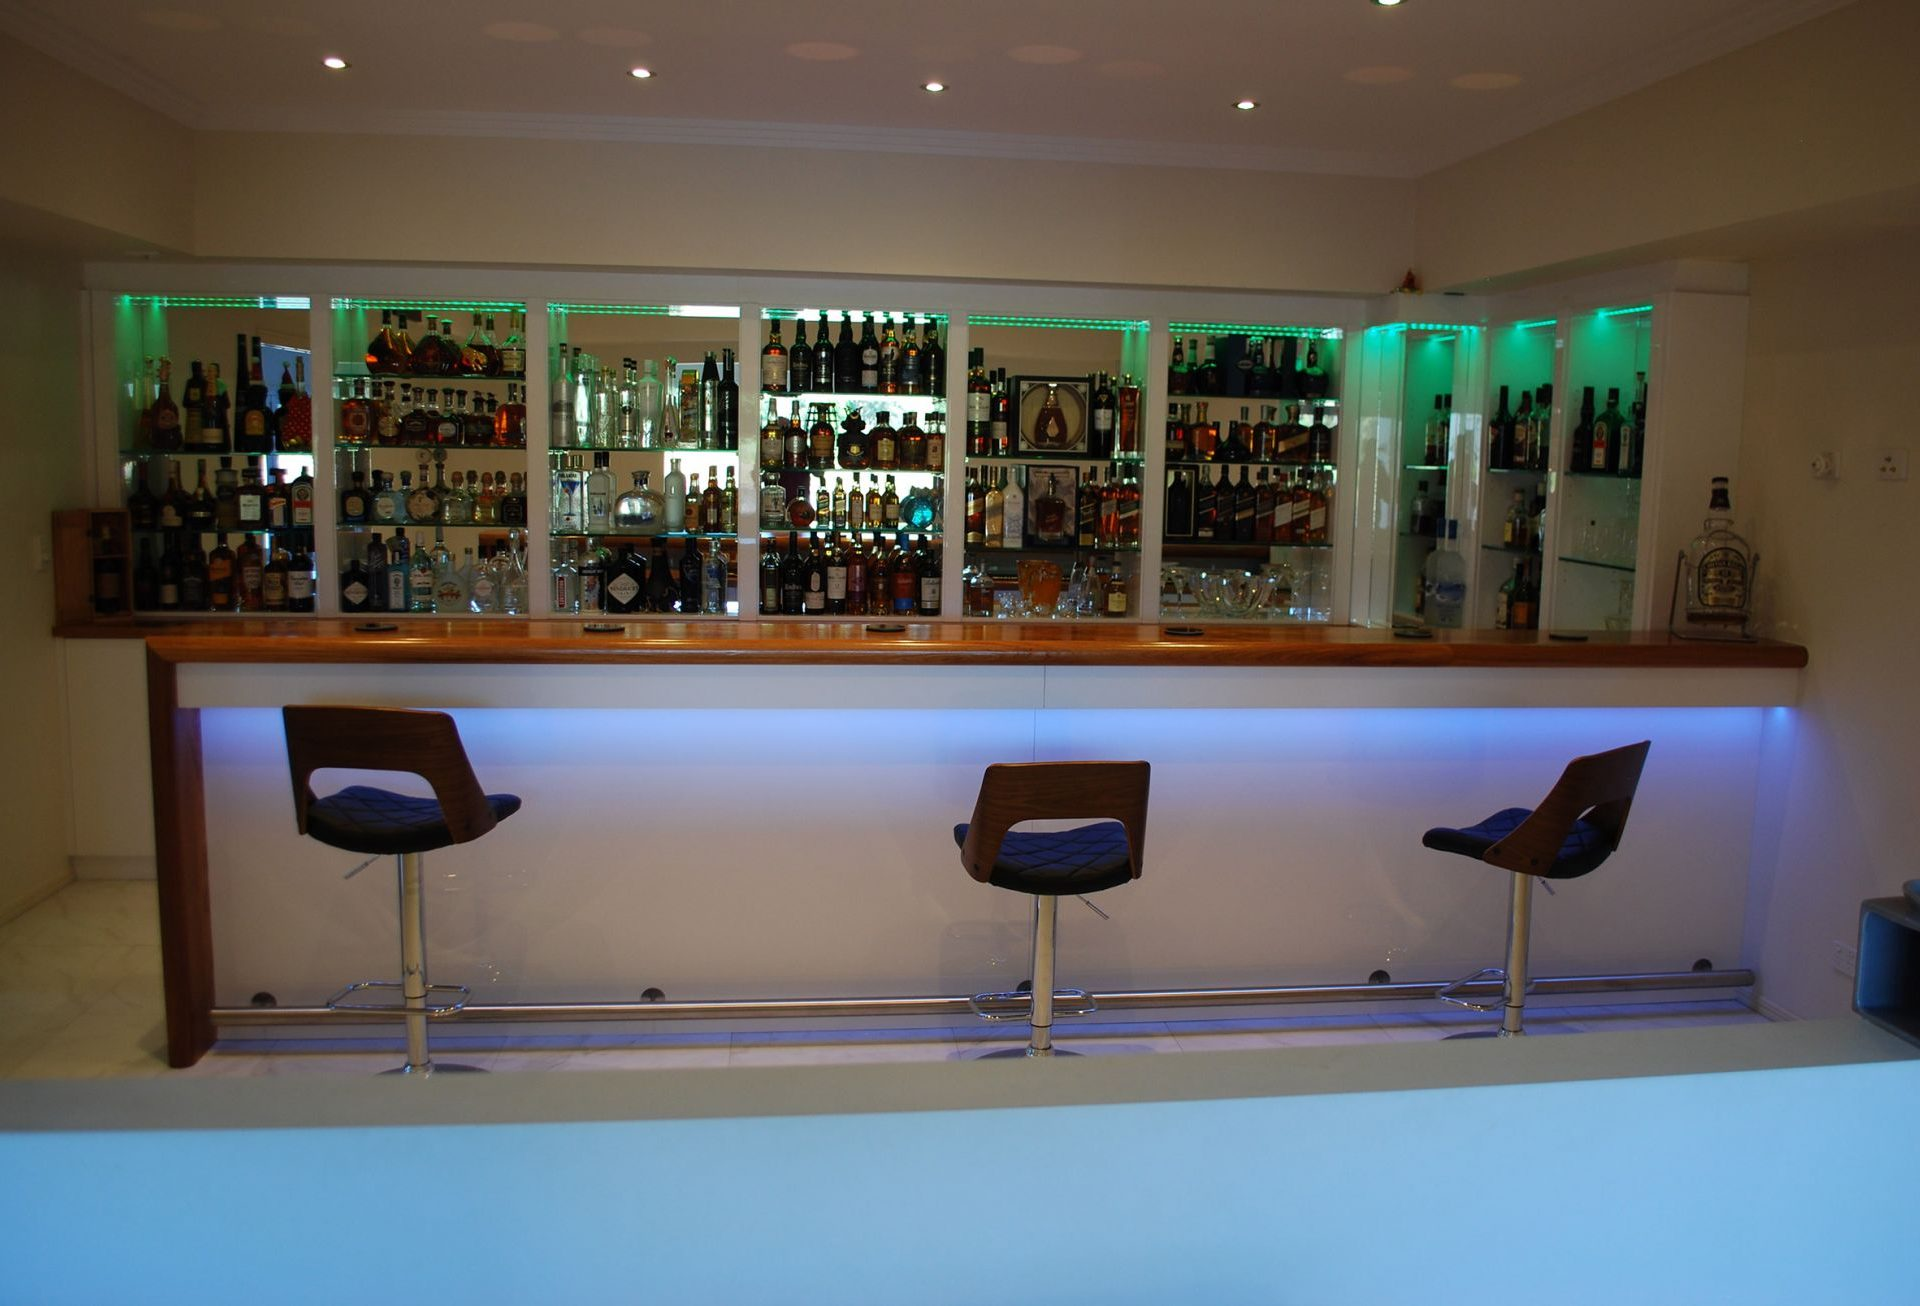 arge bar with wooden counter with white counter and glass shelves